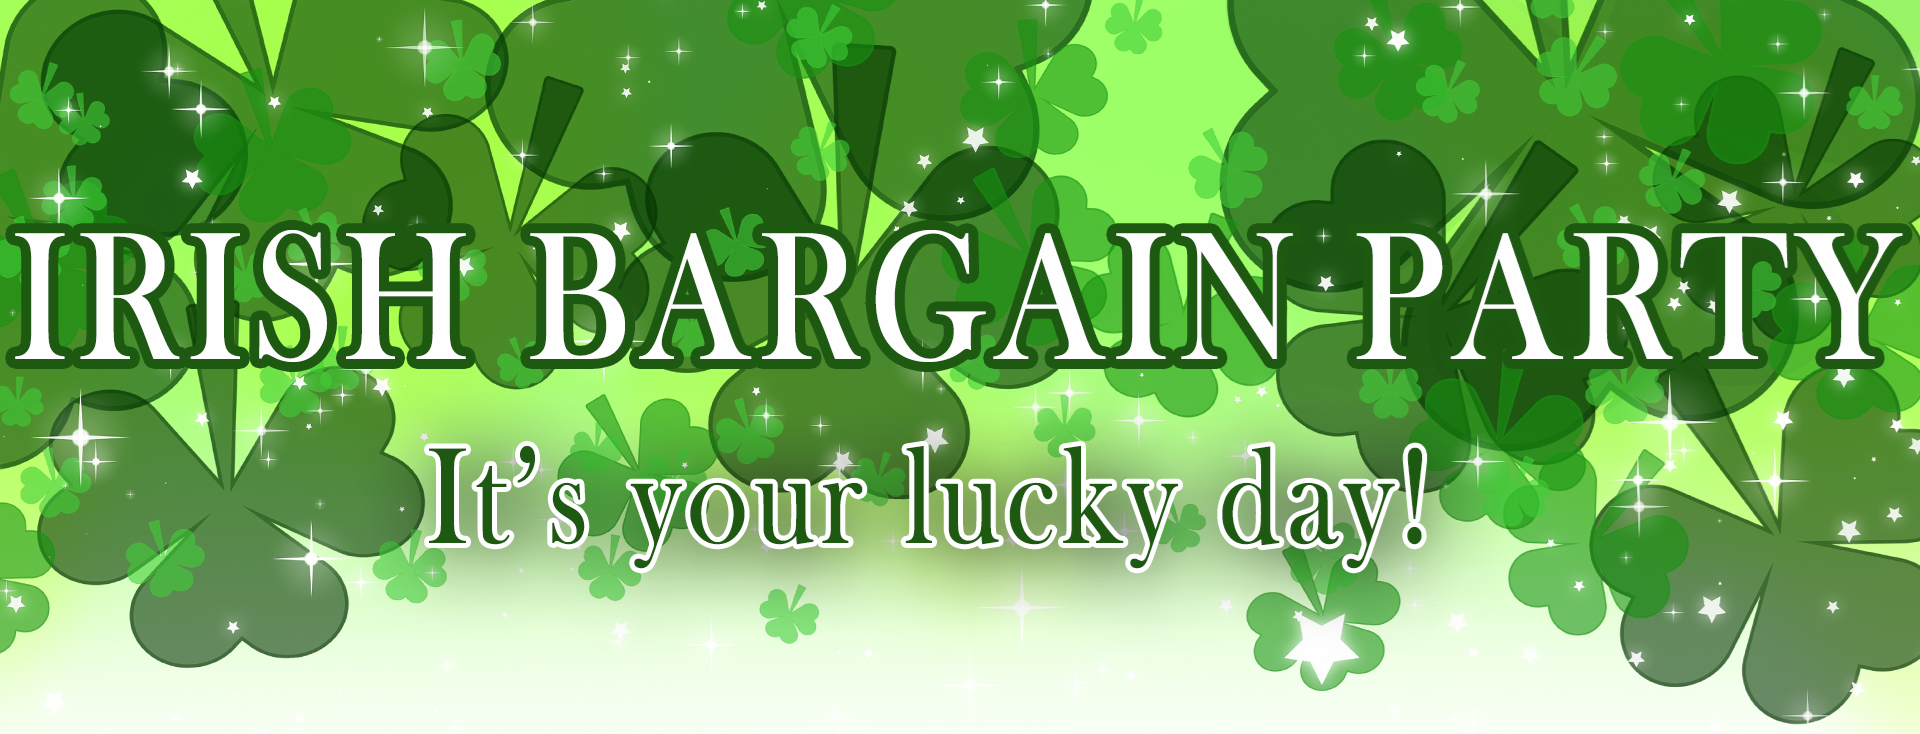 It's your lucky day, the Irish Bargain Party is here!